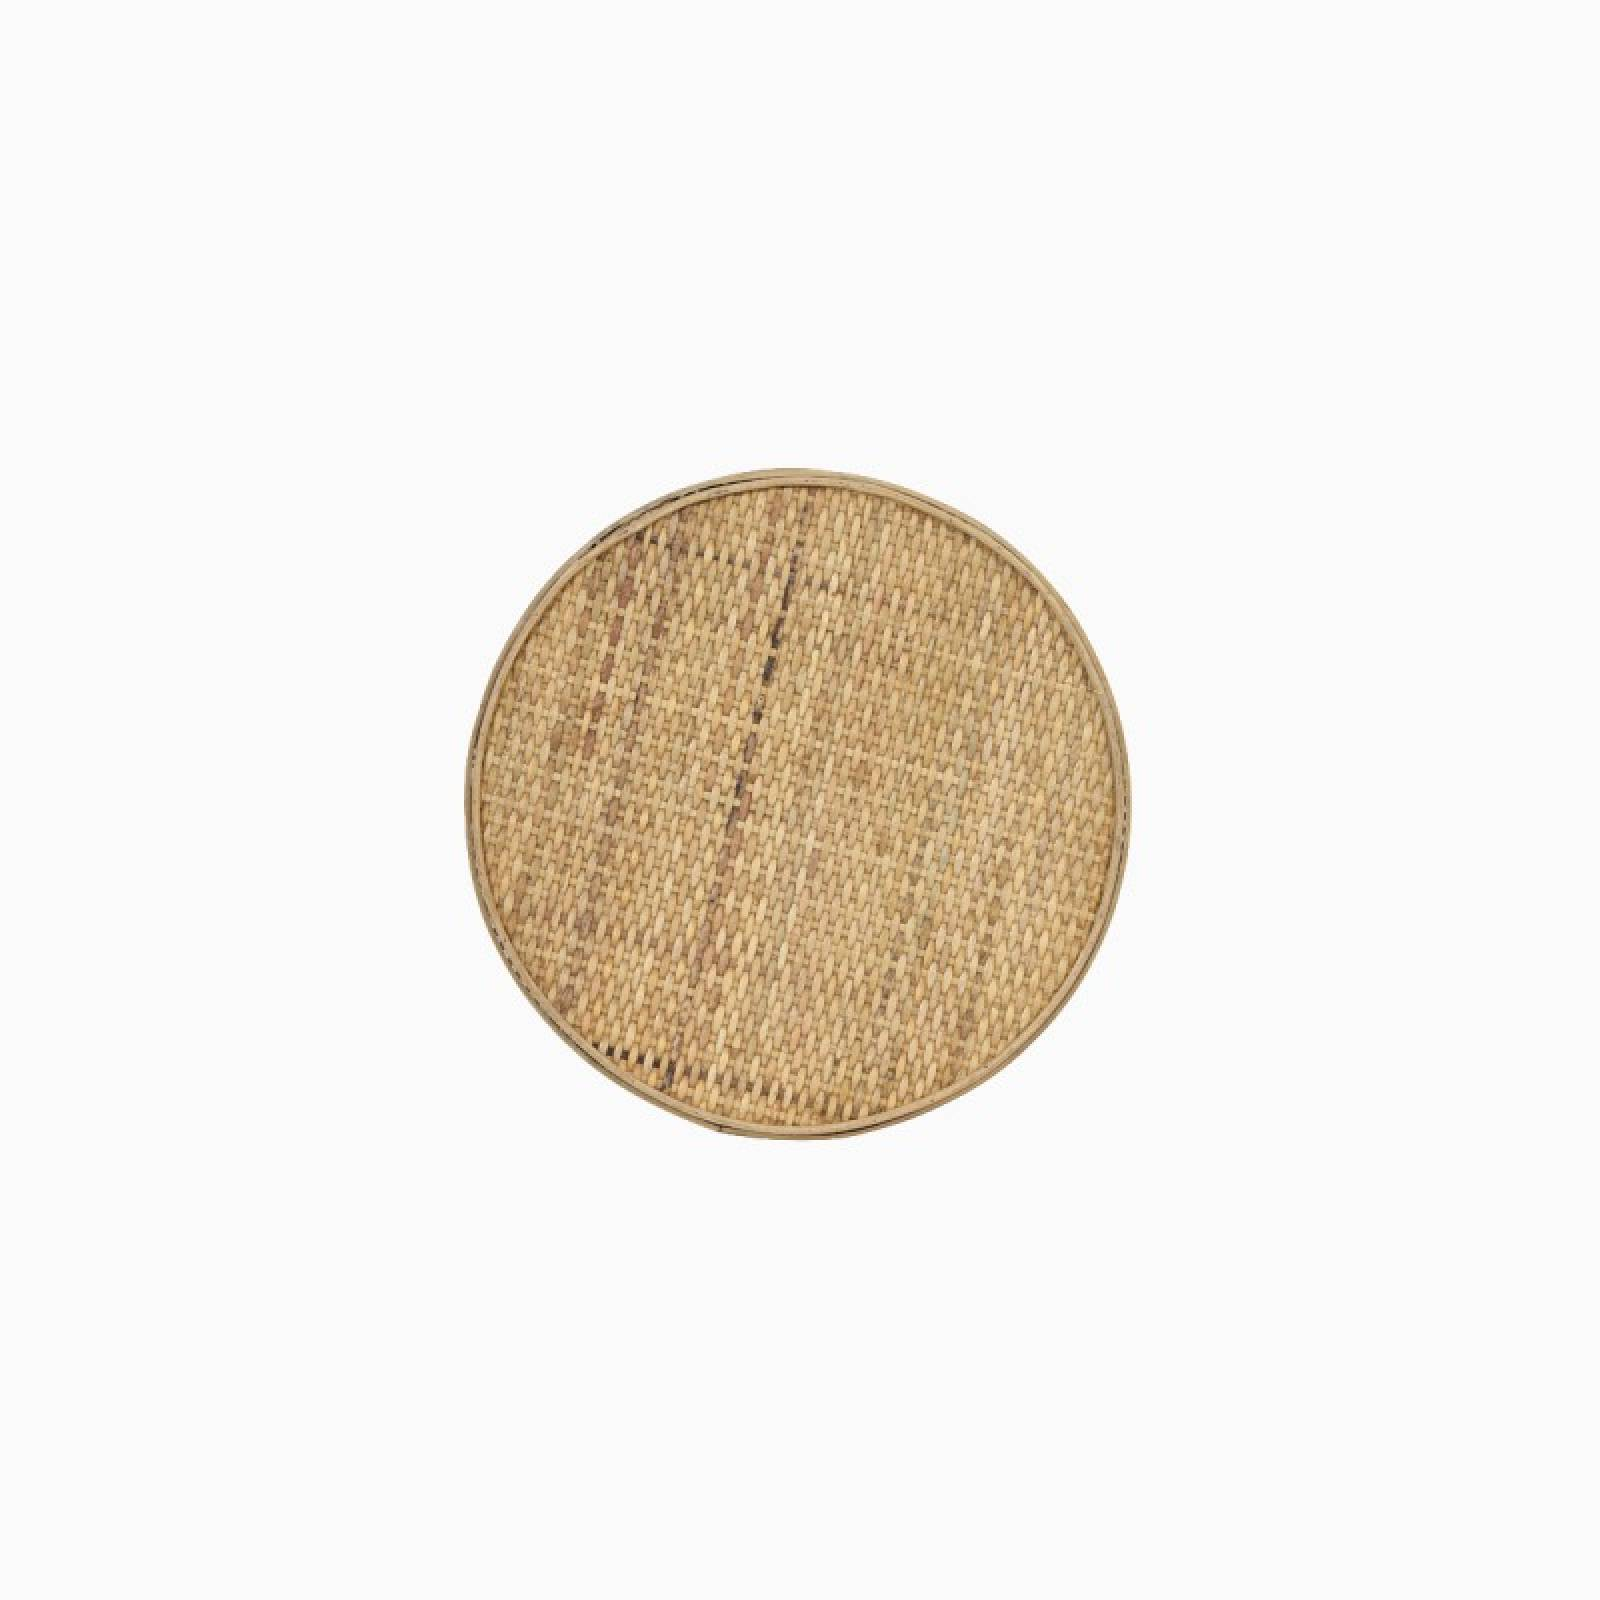 Canya Circular Woven Cane Side Table In Natural Cane thumbnails